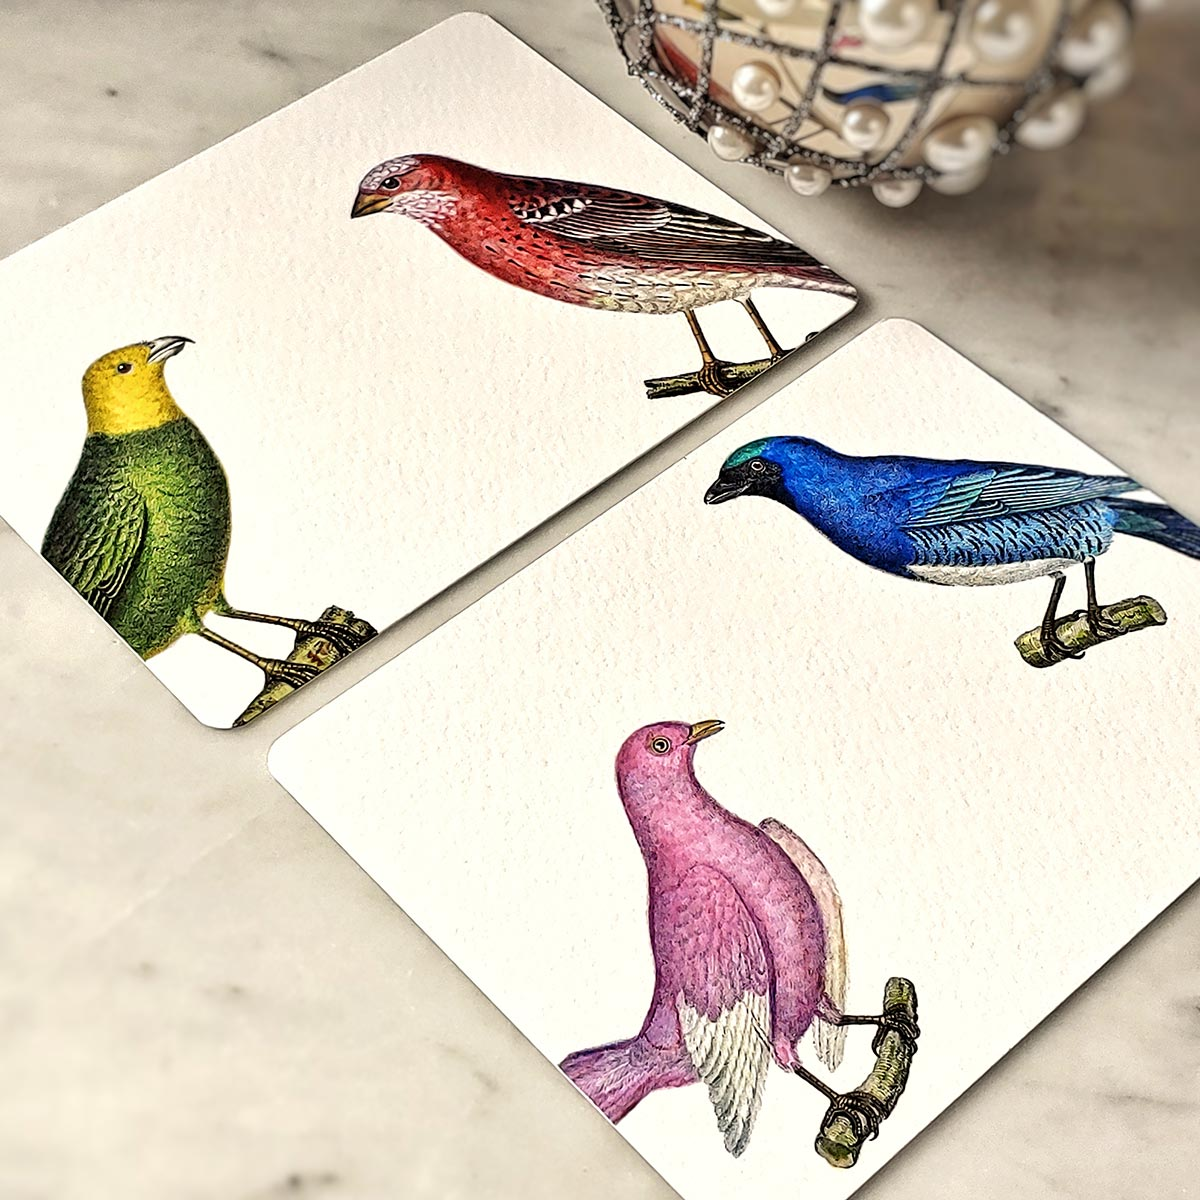 The Punctilious Mr. P's 'chromatic cuckoo' note card pack- showing pink, blue, green and red birds